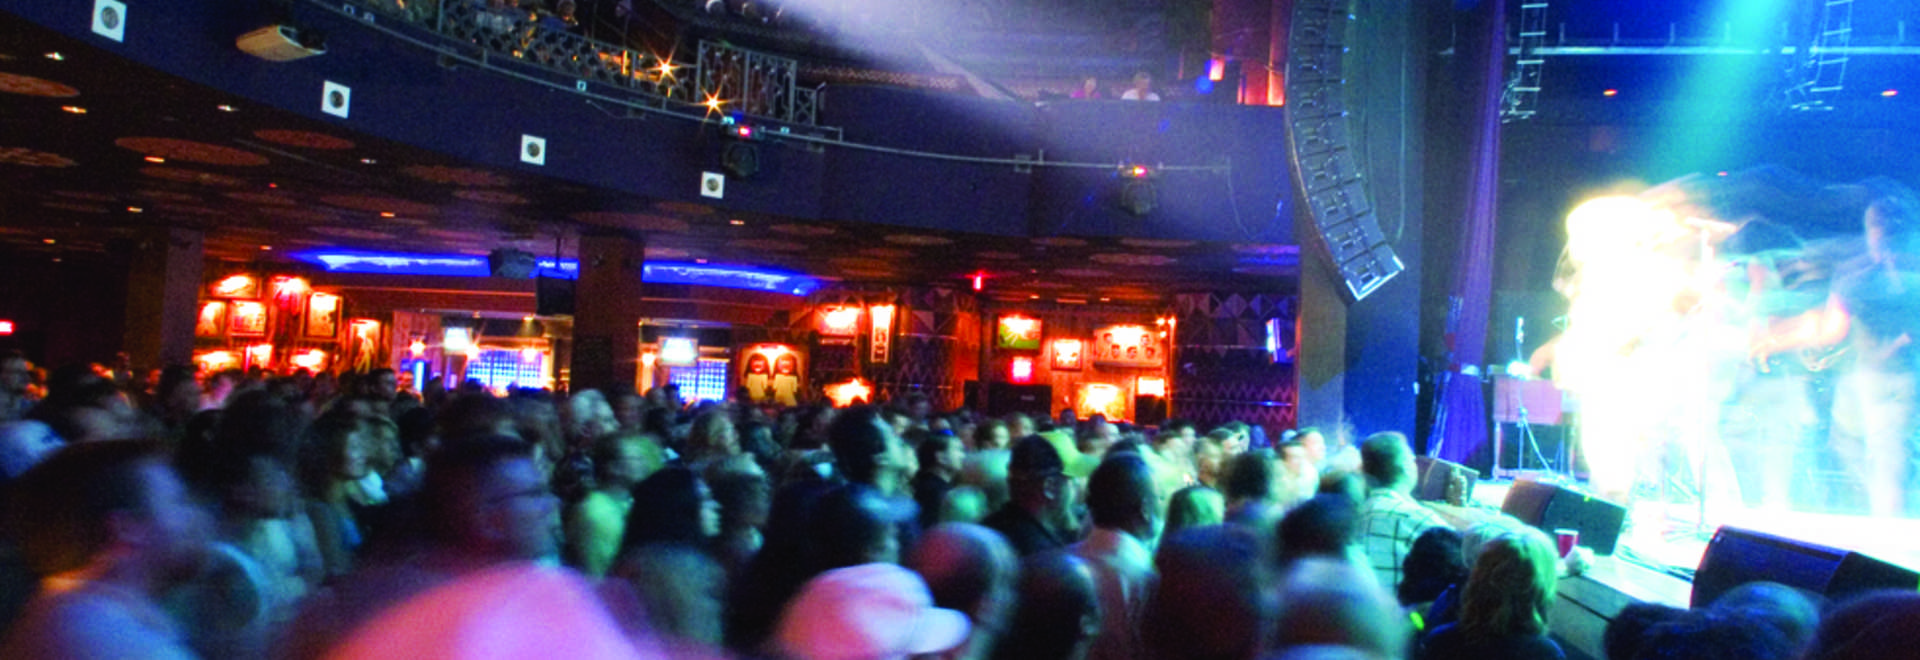 Cached Houston pictures from clubs